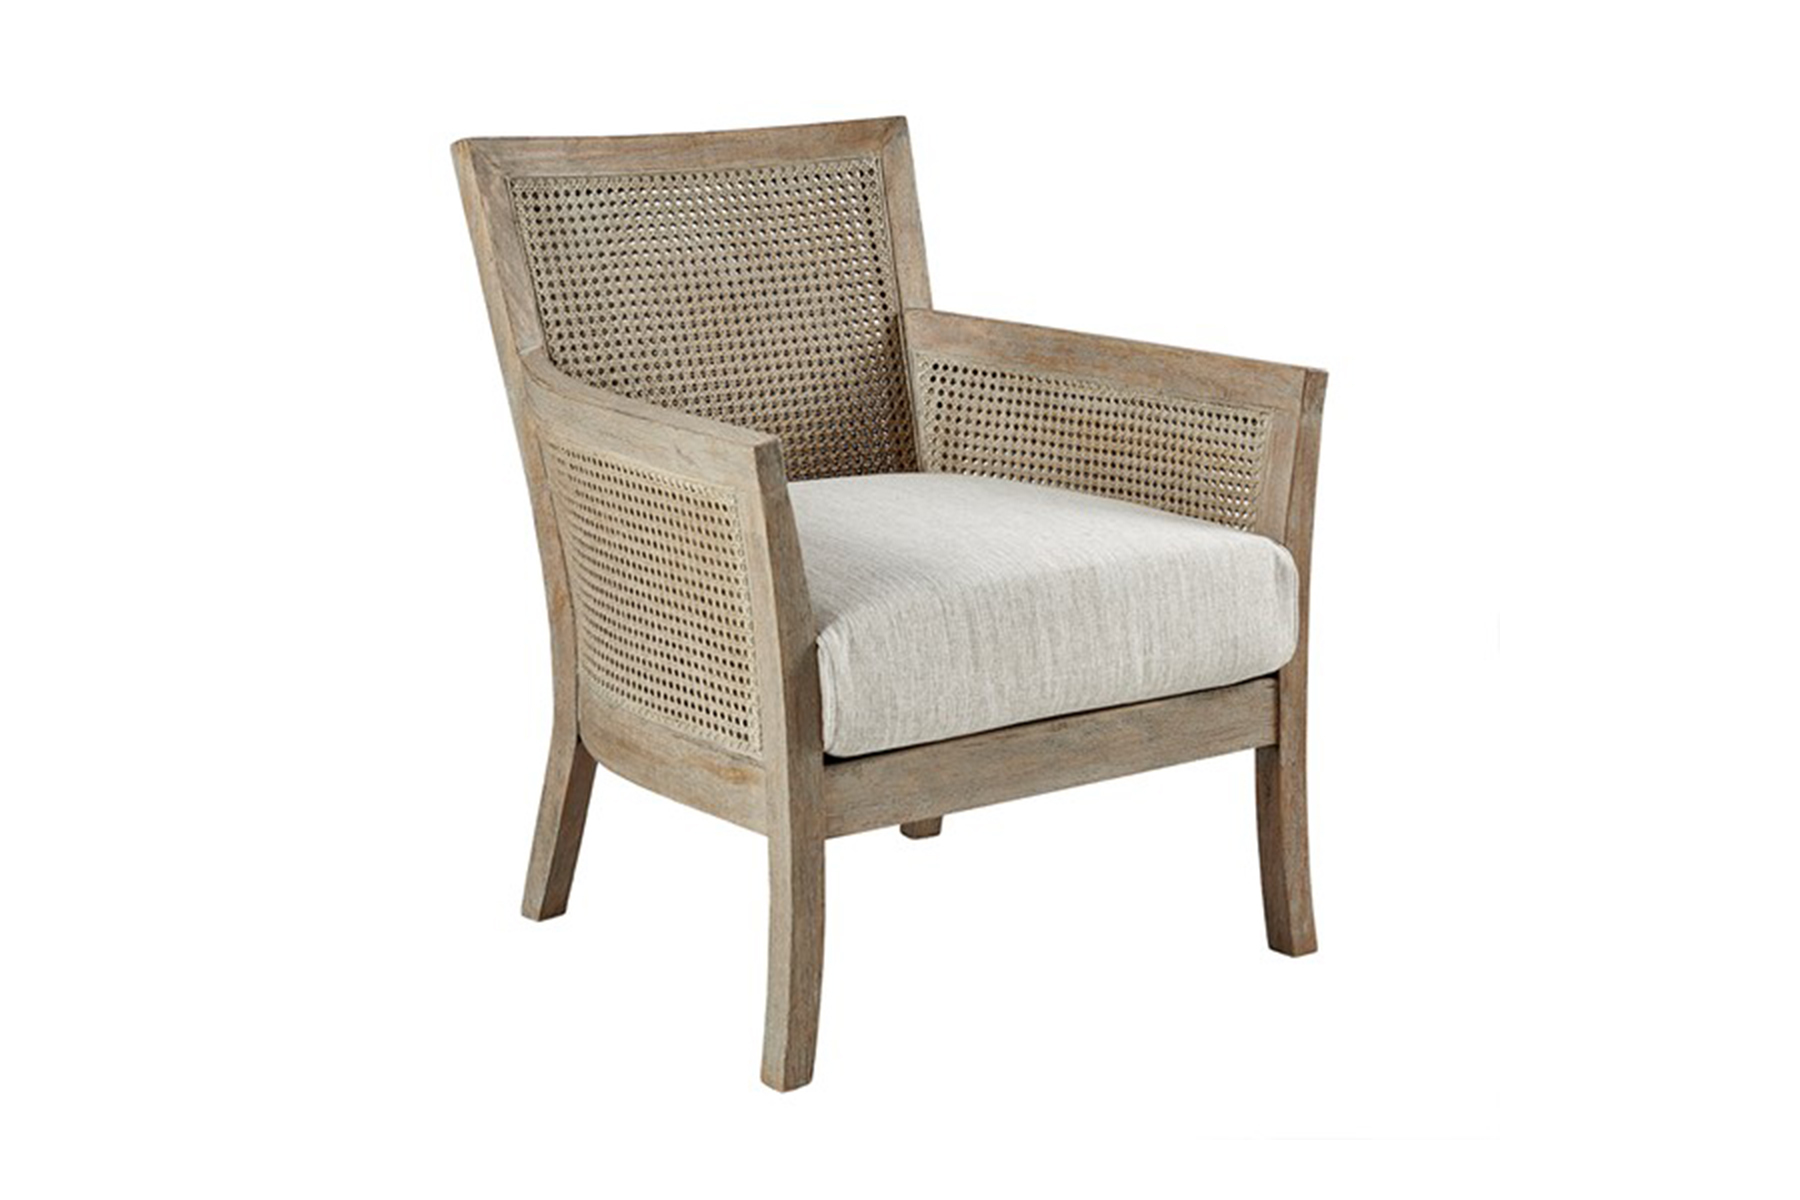 Diedra Cane Chair Web